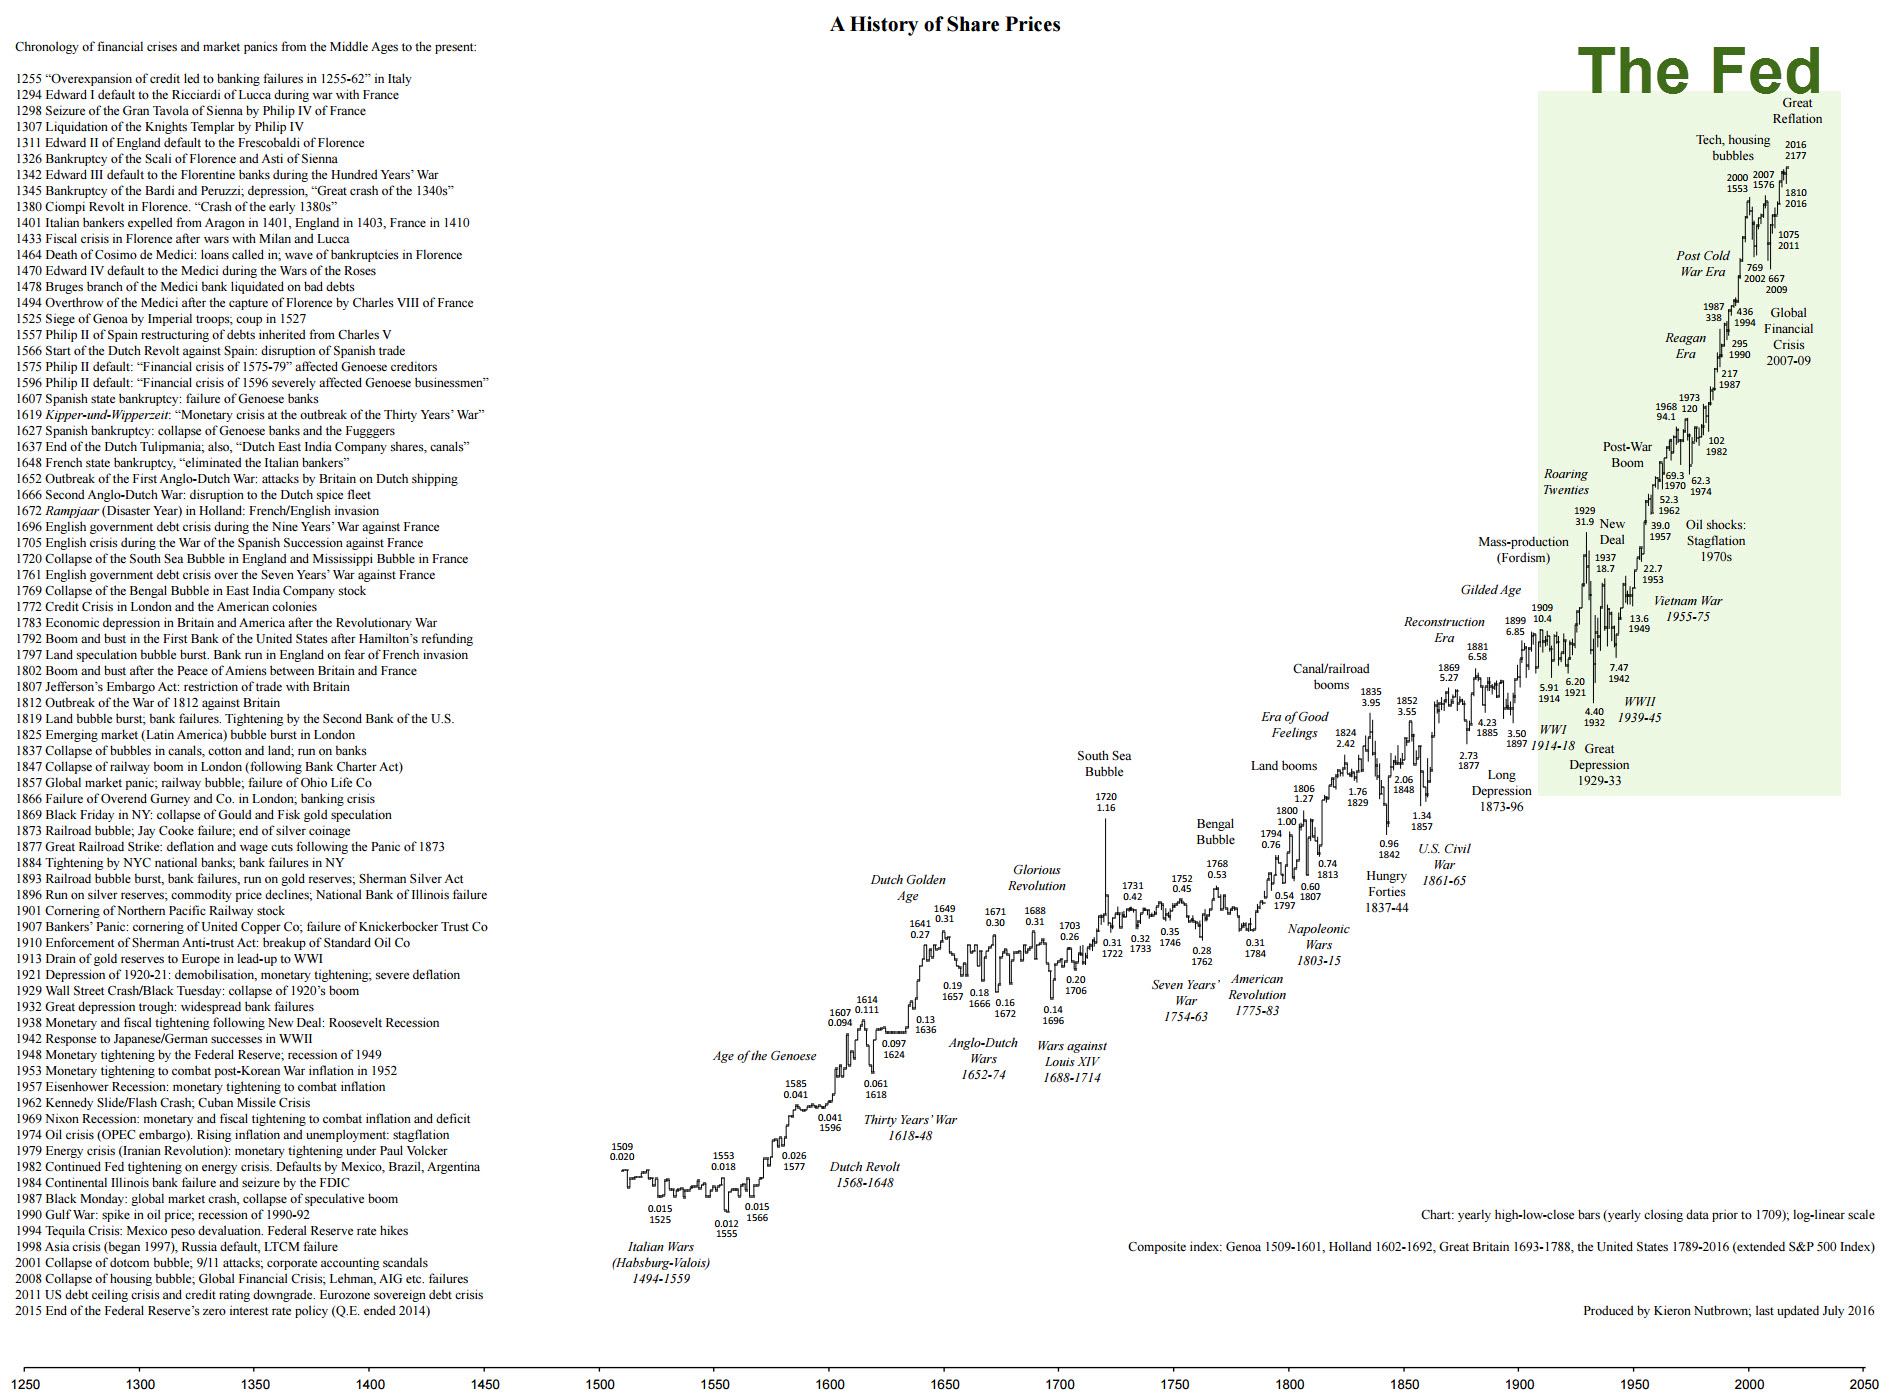 500 Years of Stock Markets